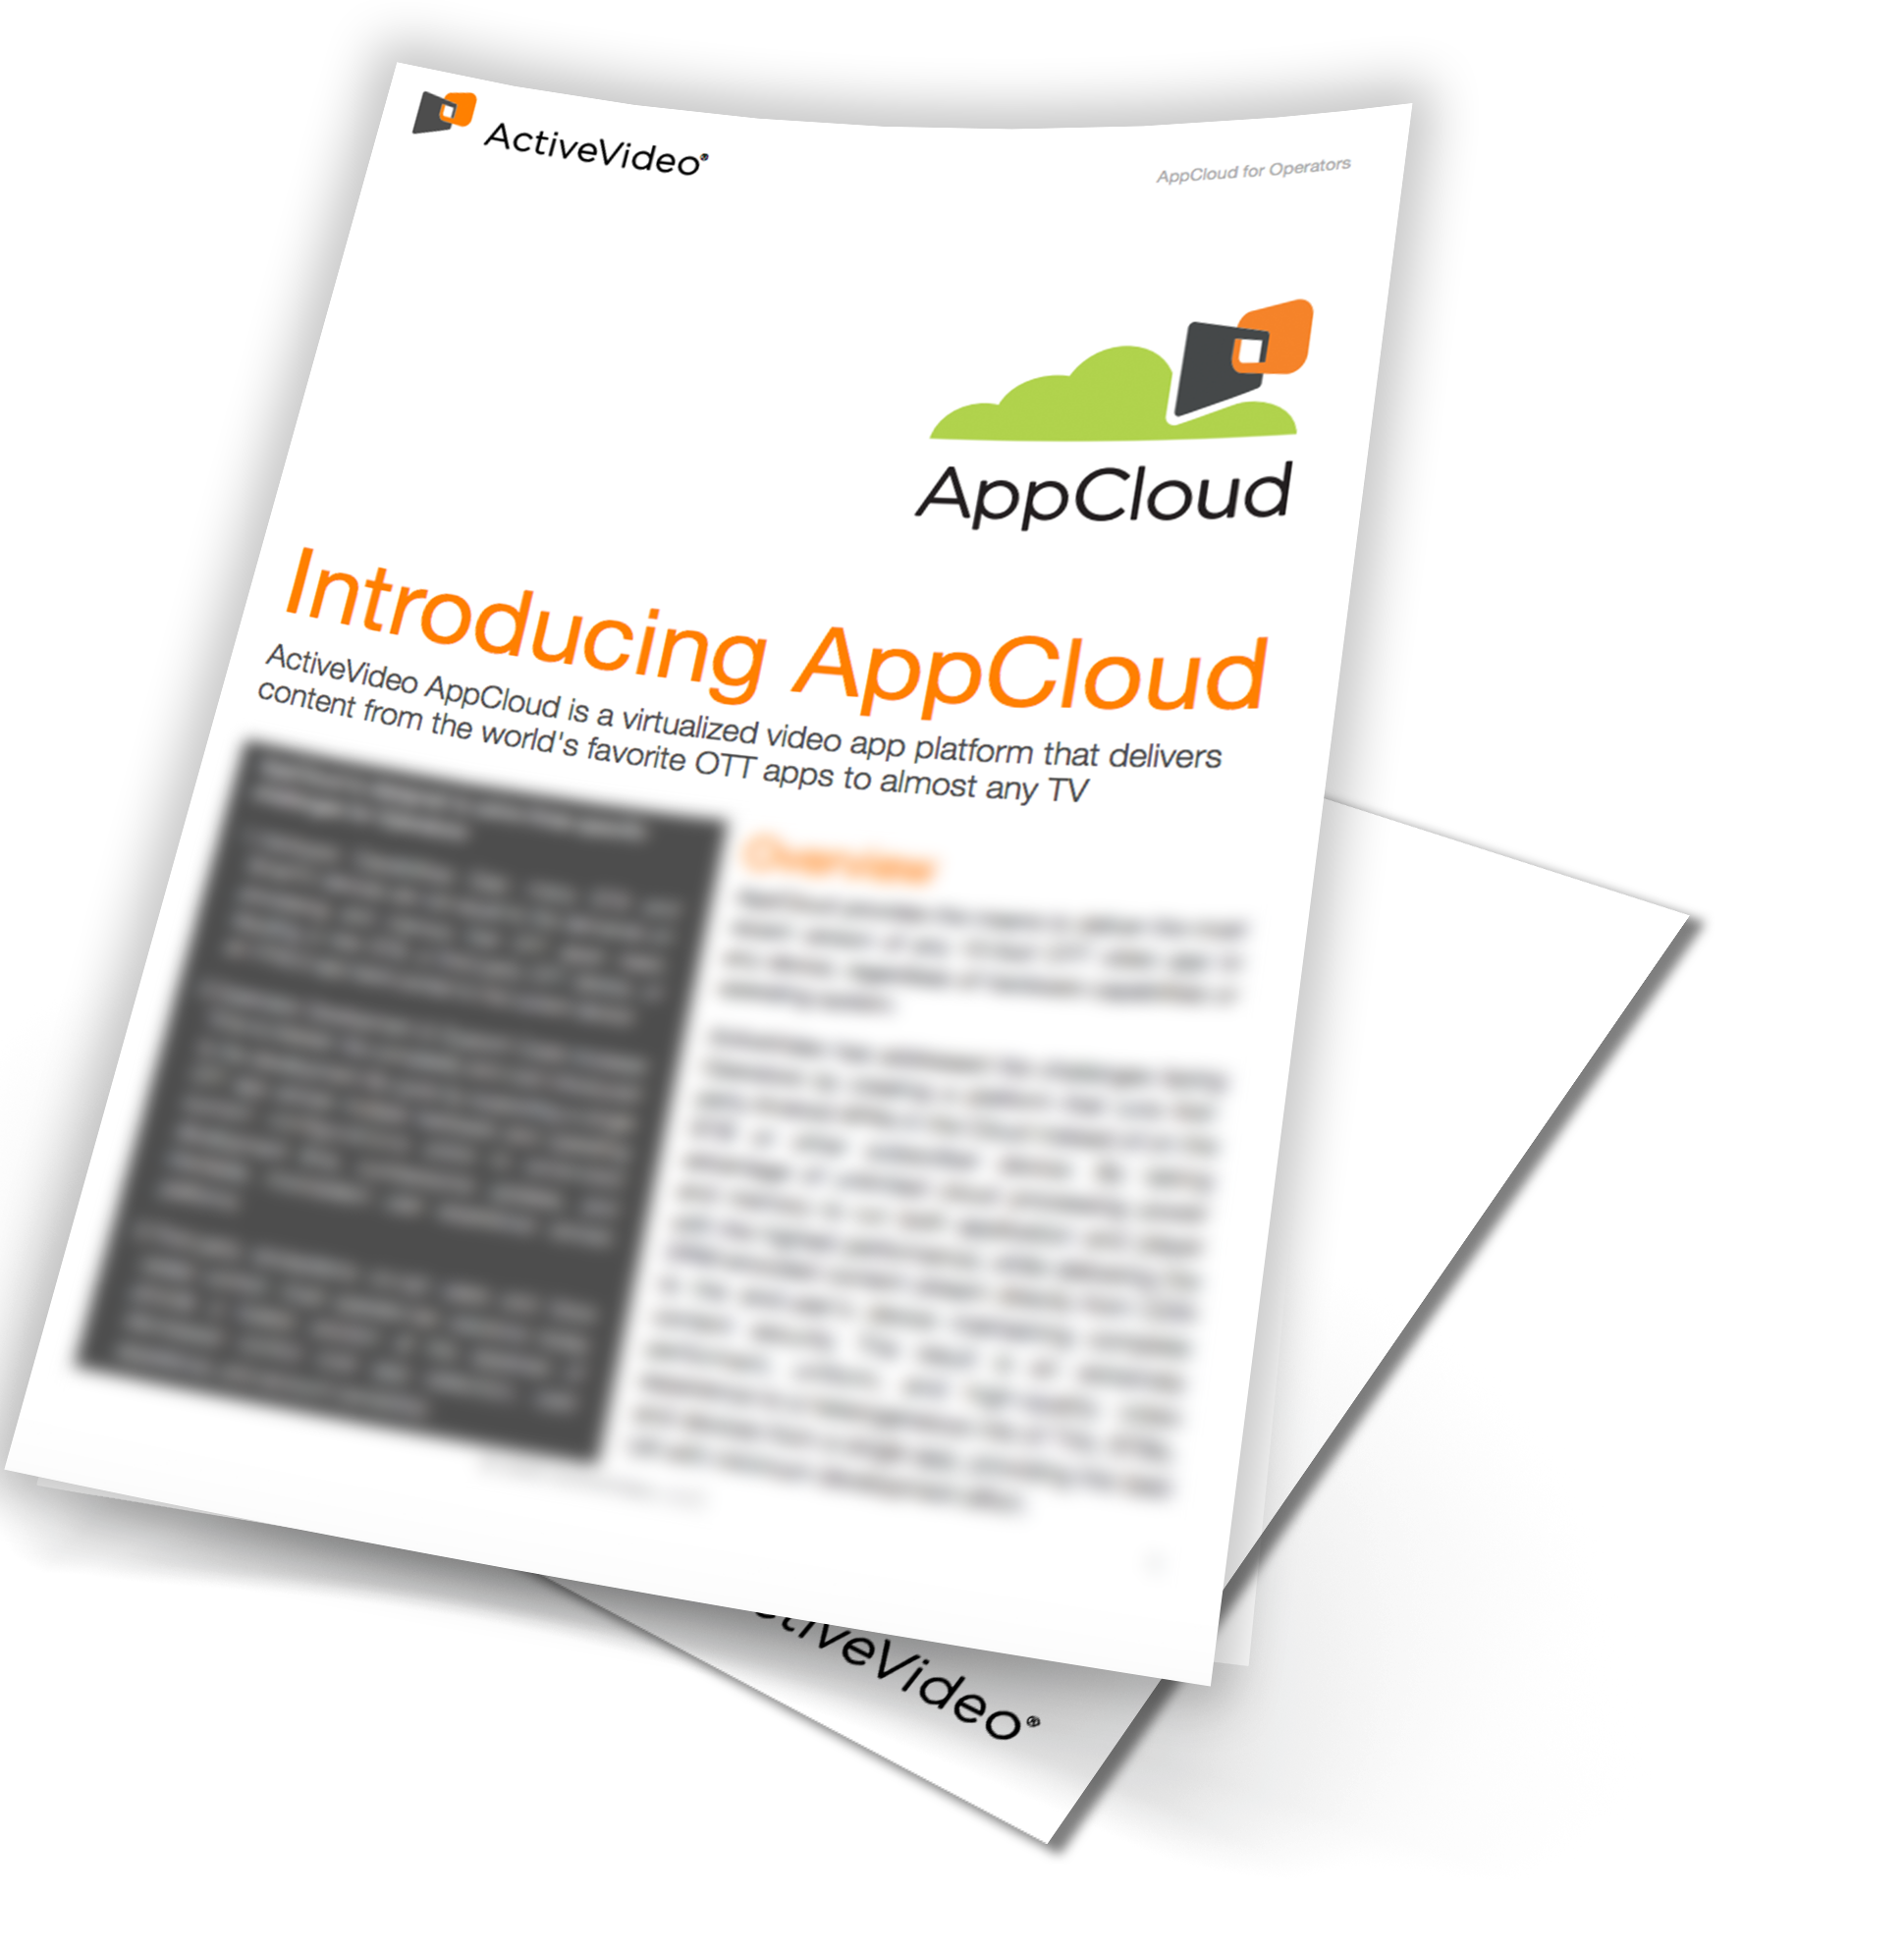 Introducing AppCloud